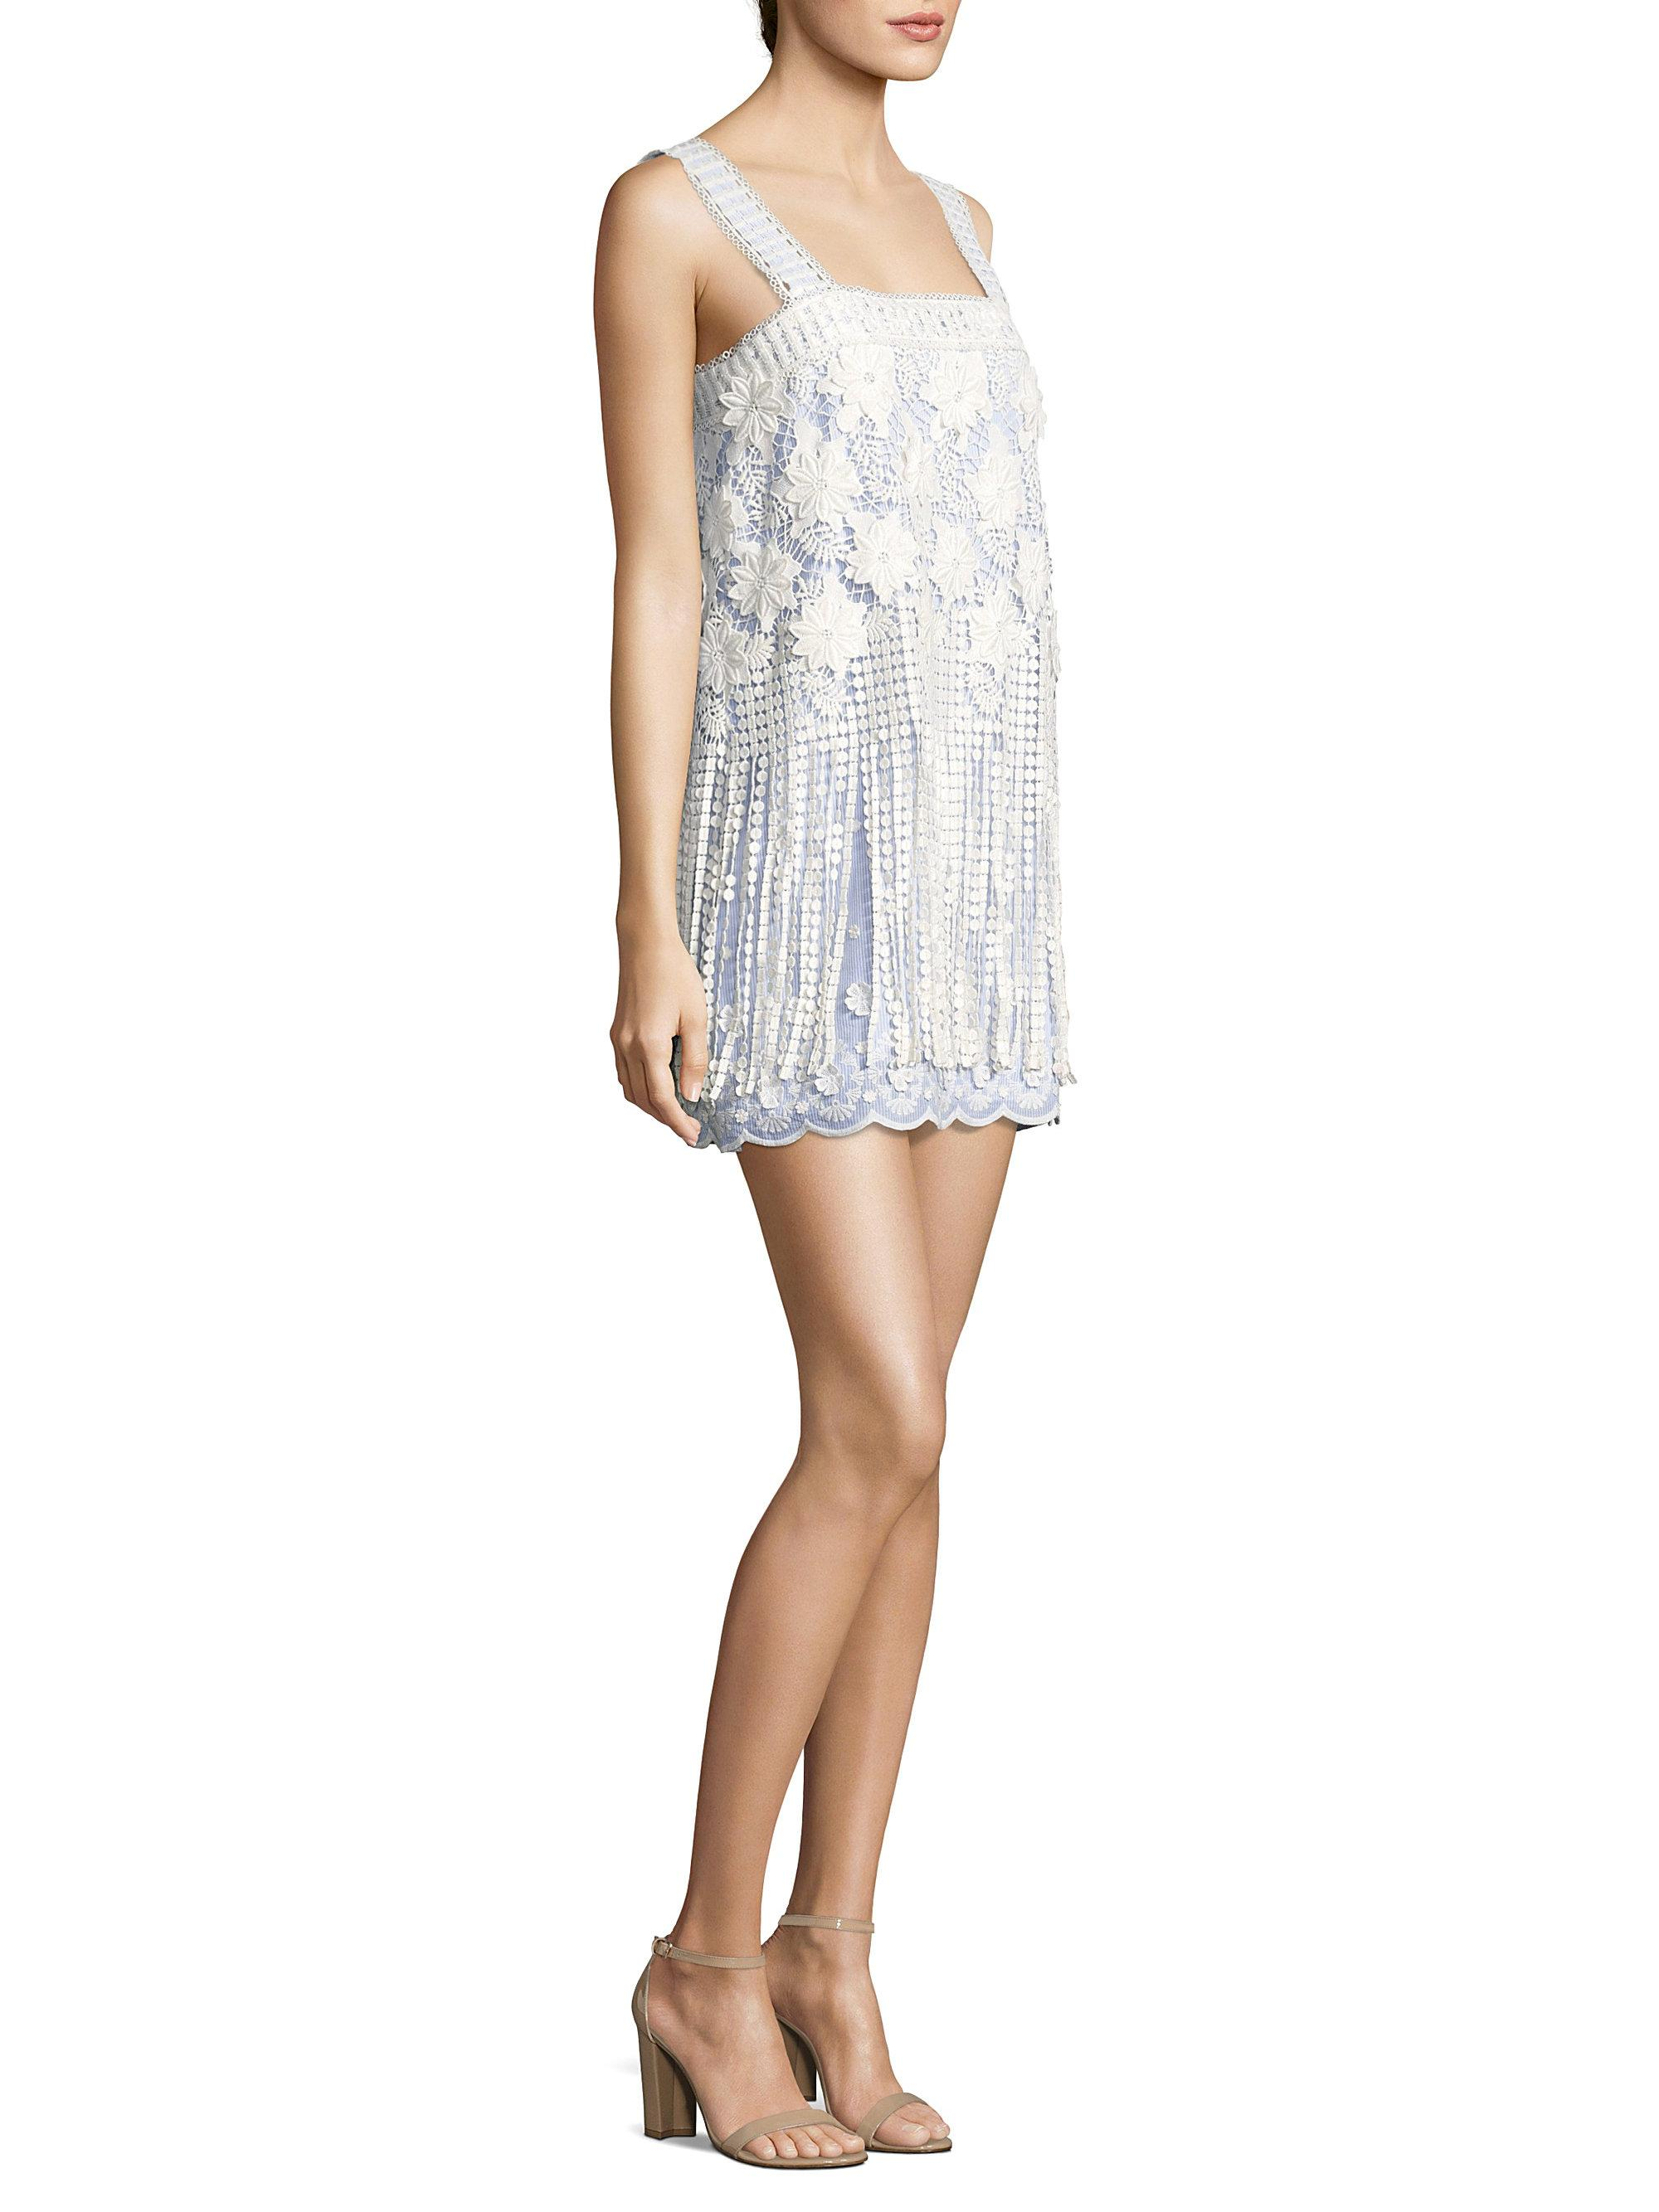 975cd522add Alexis Fulton Striped Floral Embroidered Mini Dress - Lyst